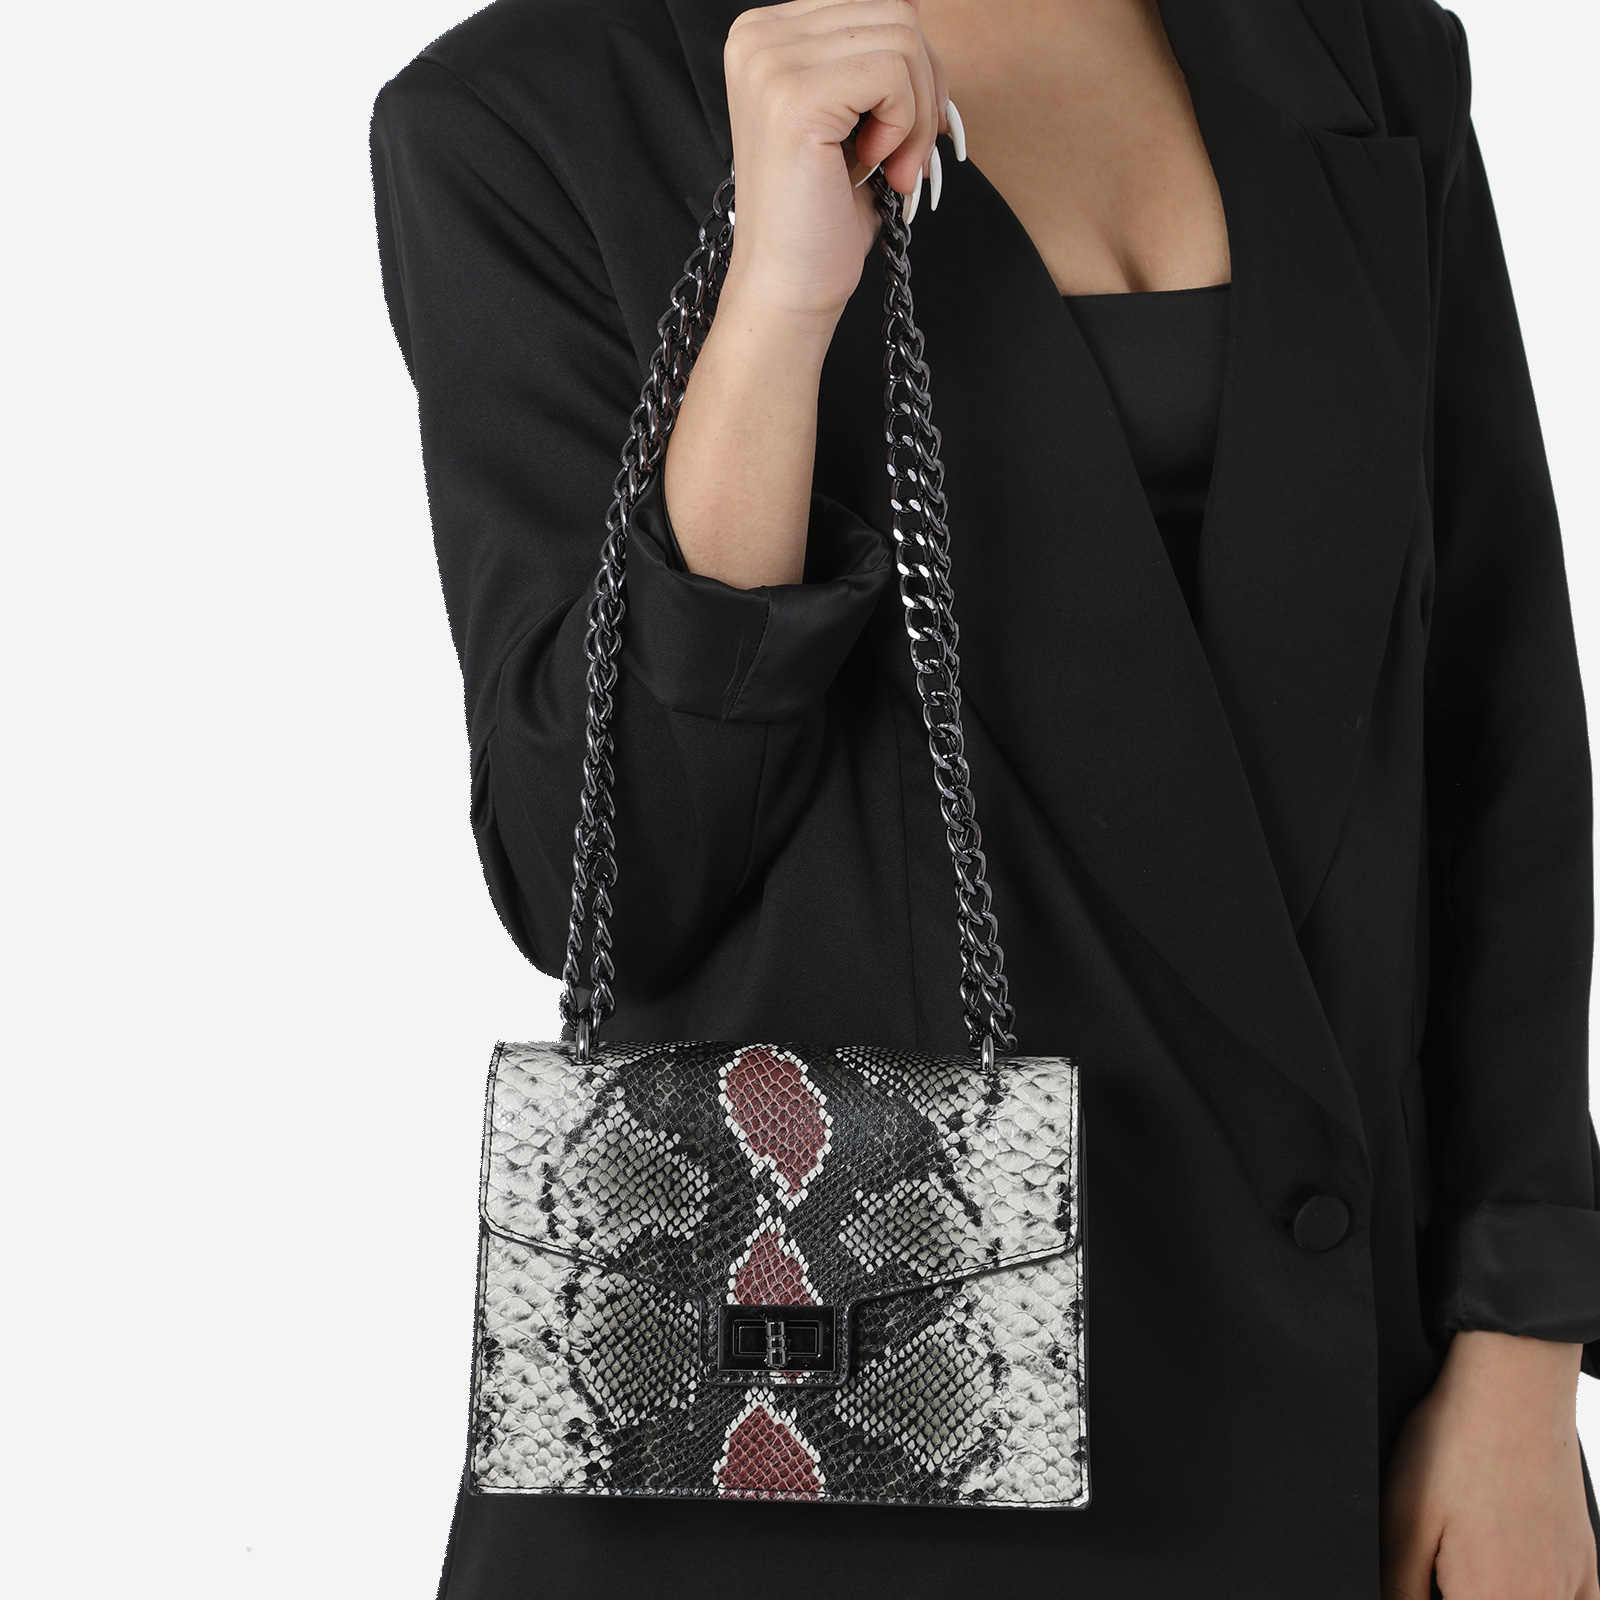 Chain Detail Cross Body Bag In Black And Red Snake Print Faux Leather